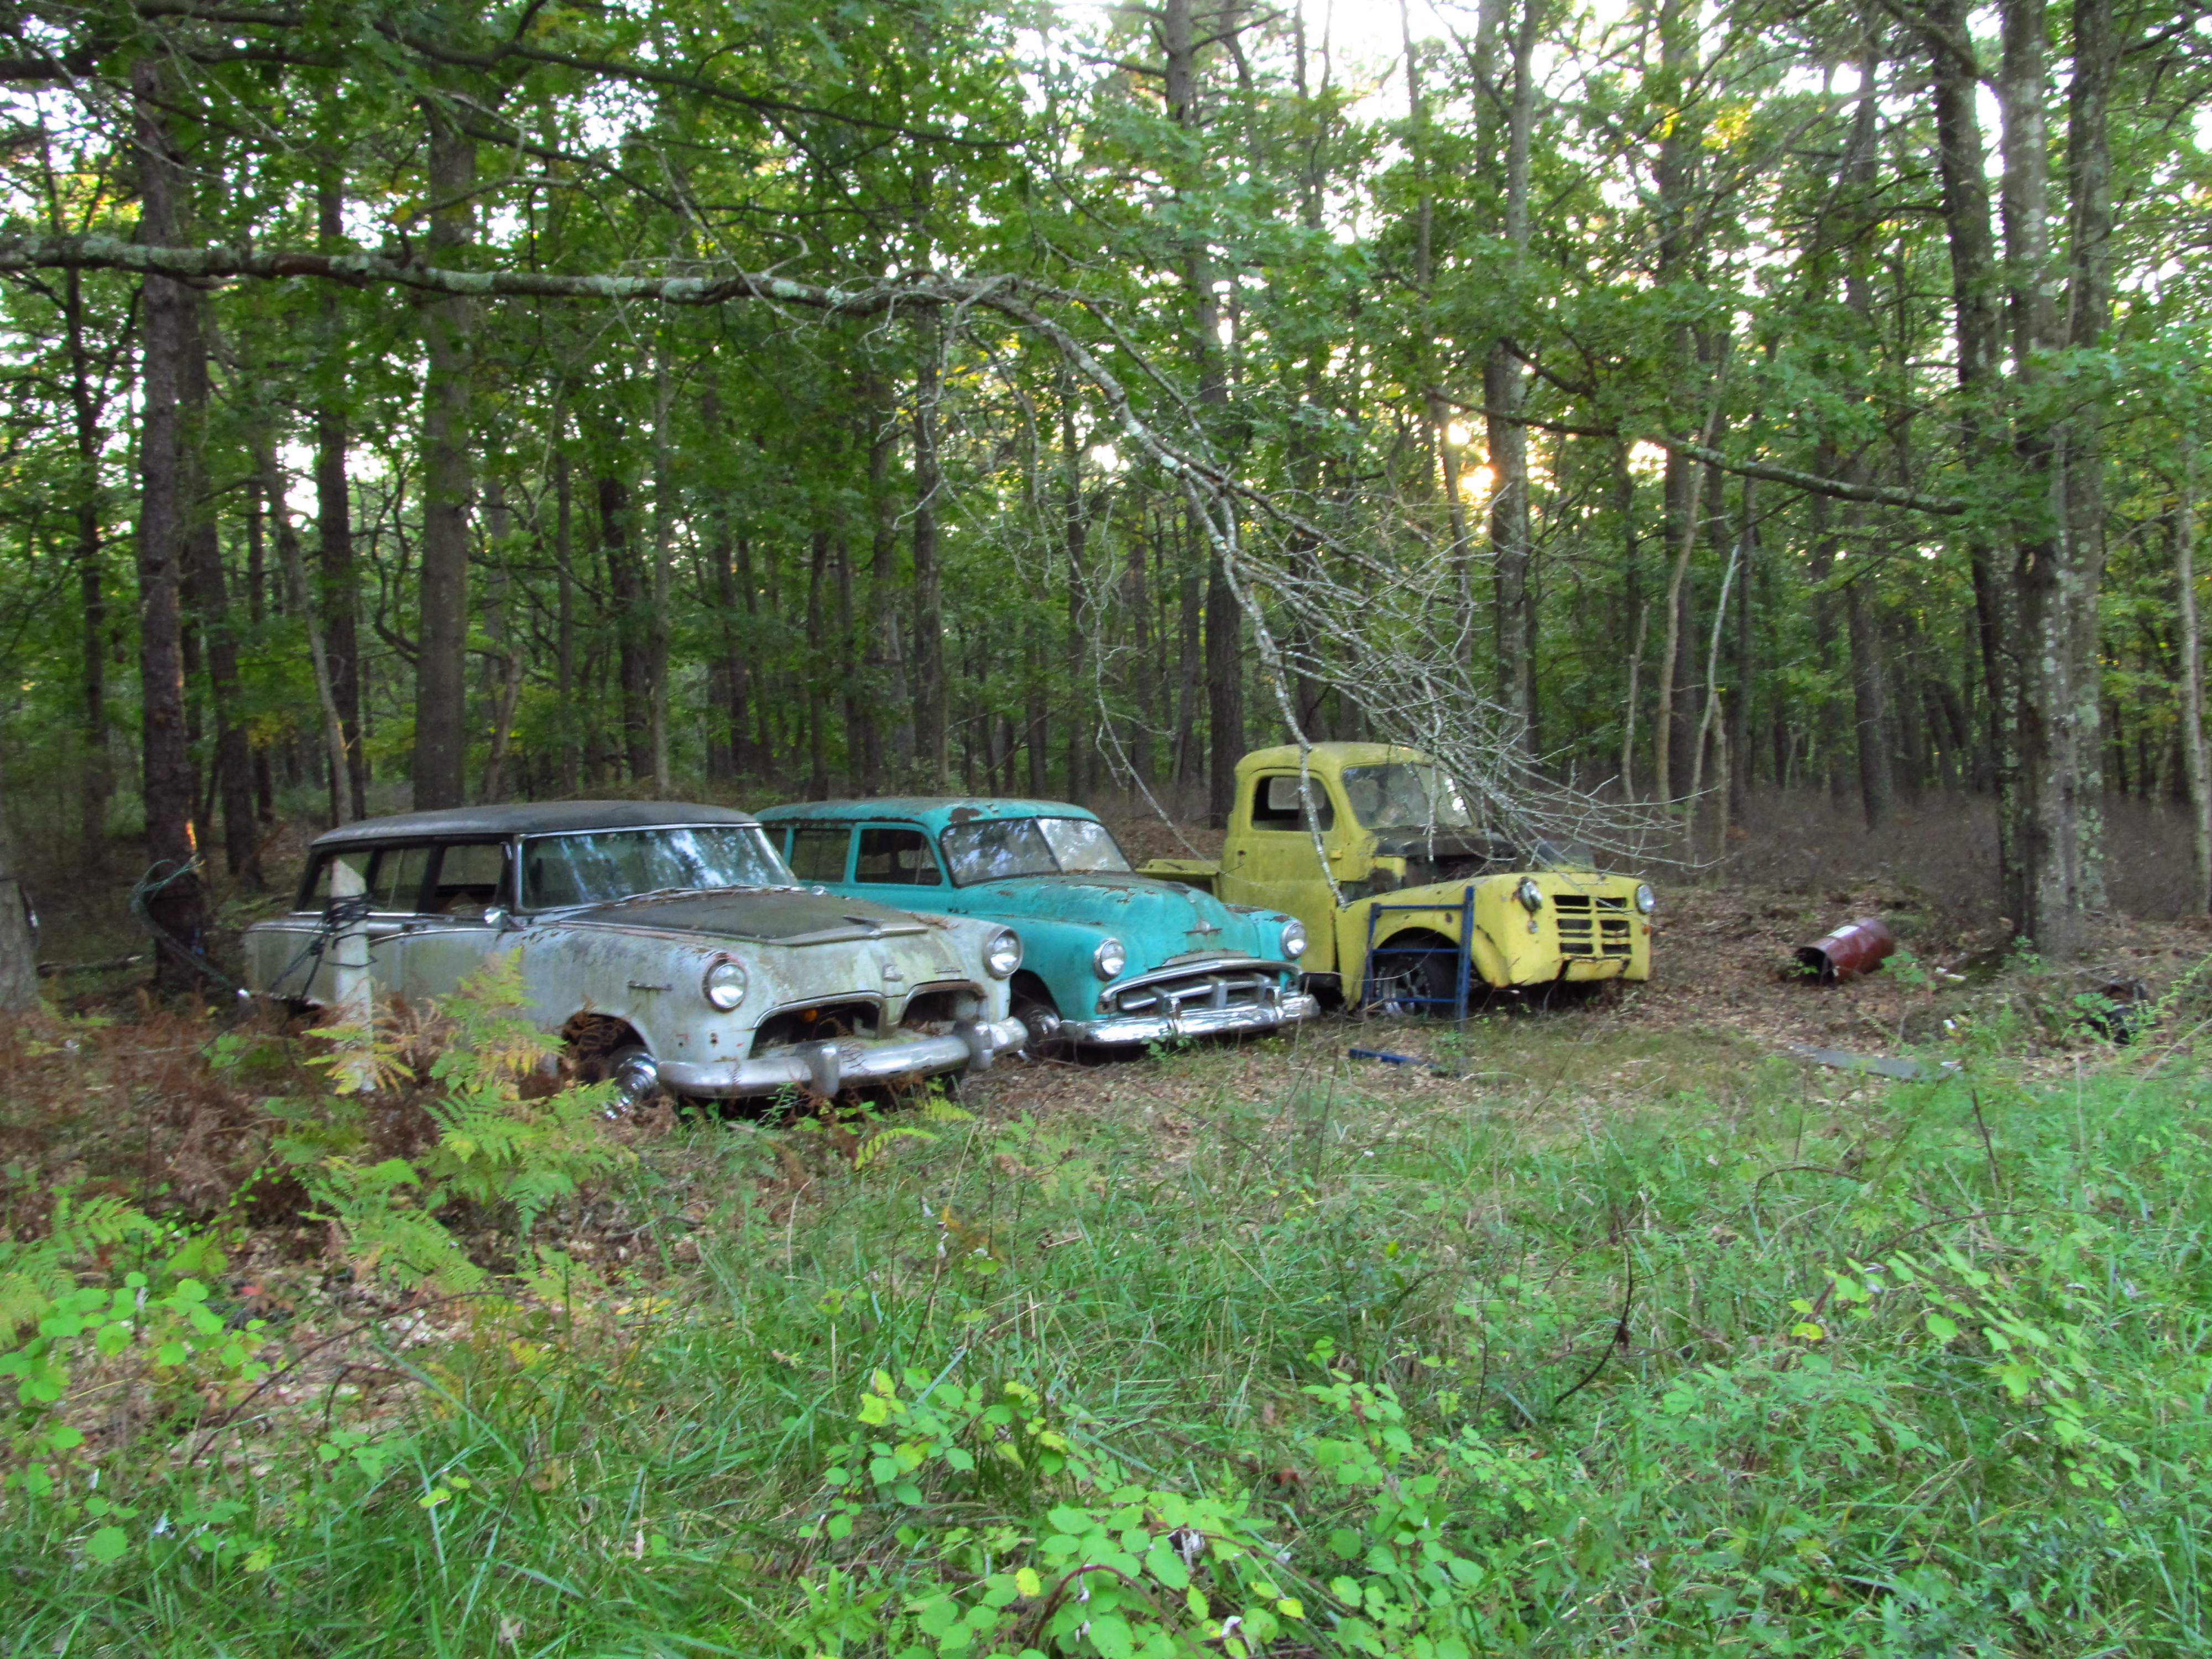 File:Very Old Cars - panoramio.jpg - Wikimedia Commons